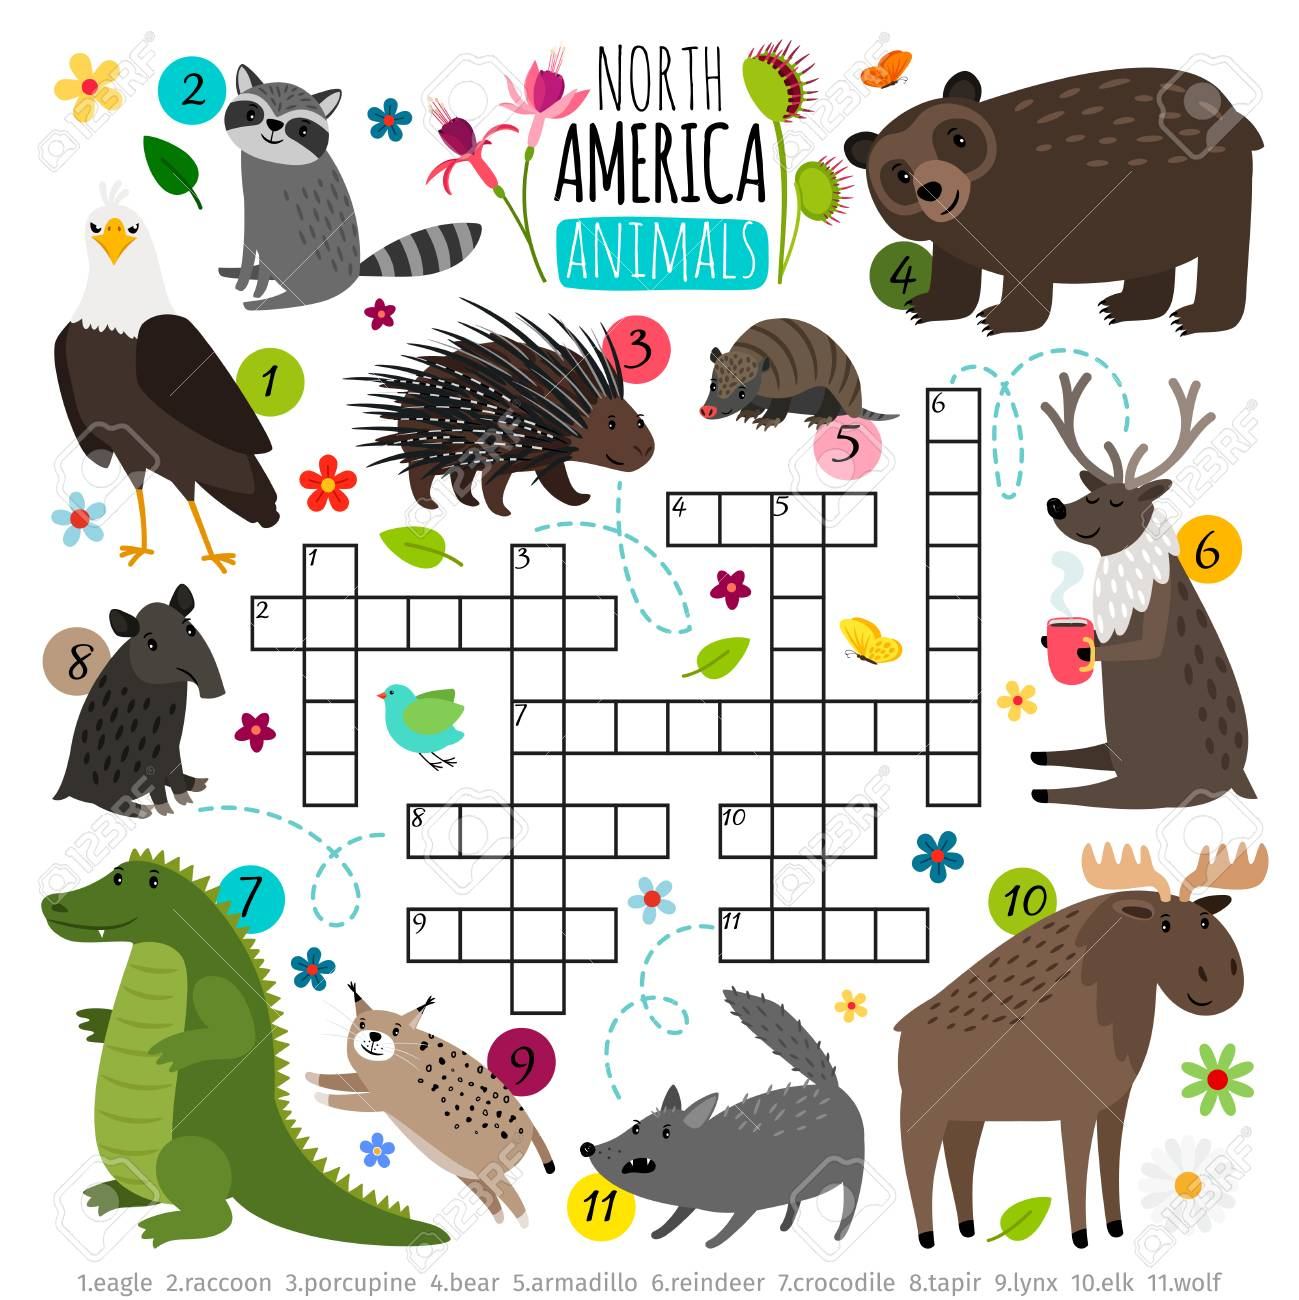 Animals Crossword Kids Words Brainteaser With North America Royalty Free Cliparts Vectors And Stock Illustration Image 102845676